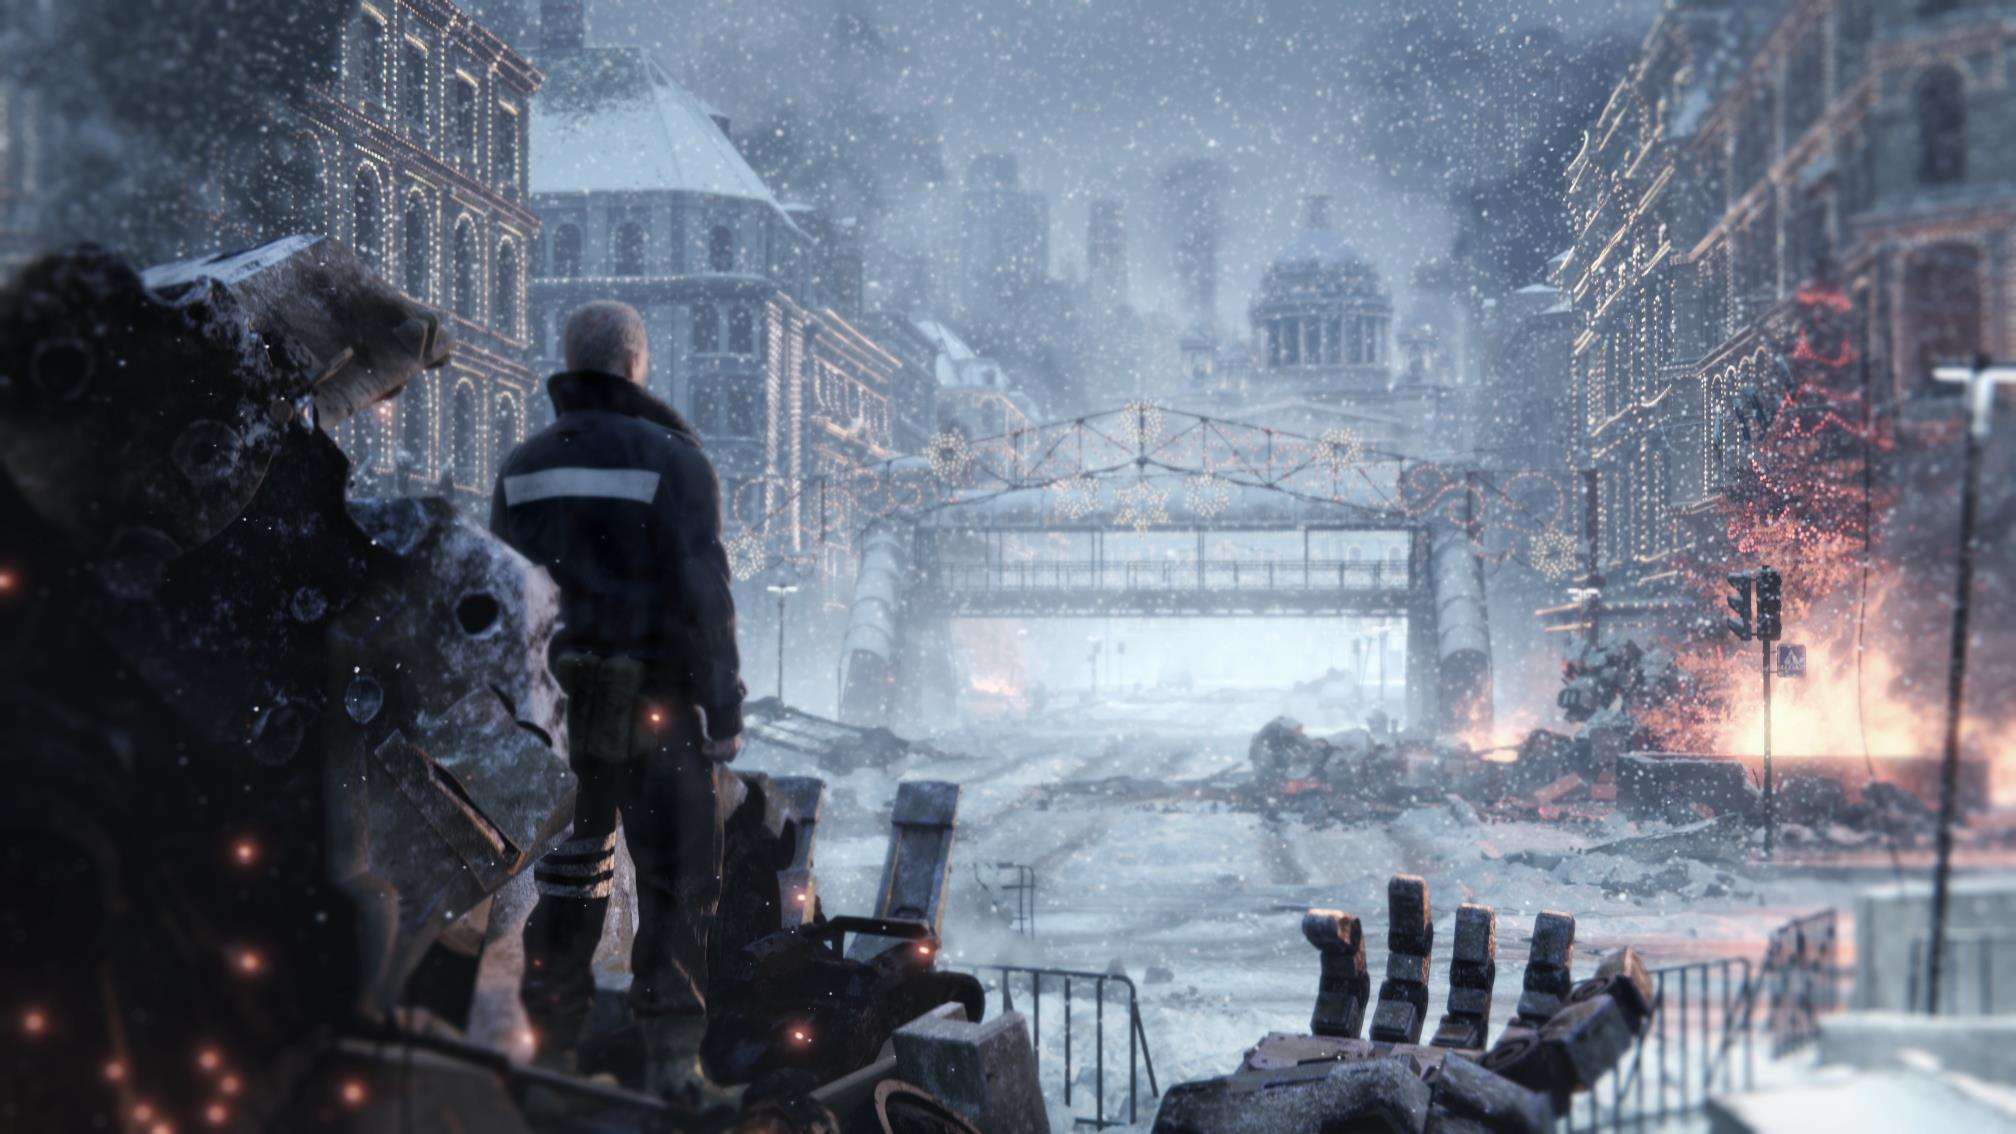 LEFT ALIVE looks like a PS3/Xbox 360 game, performs horribly, has Very Negative reviews on Steam